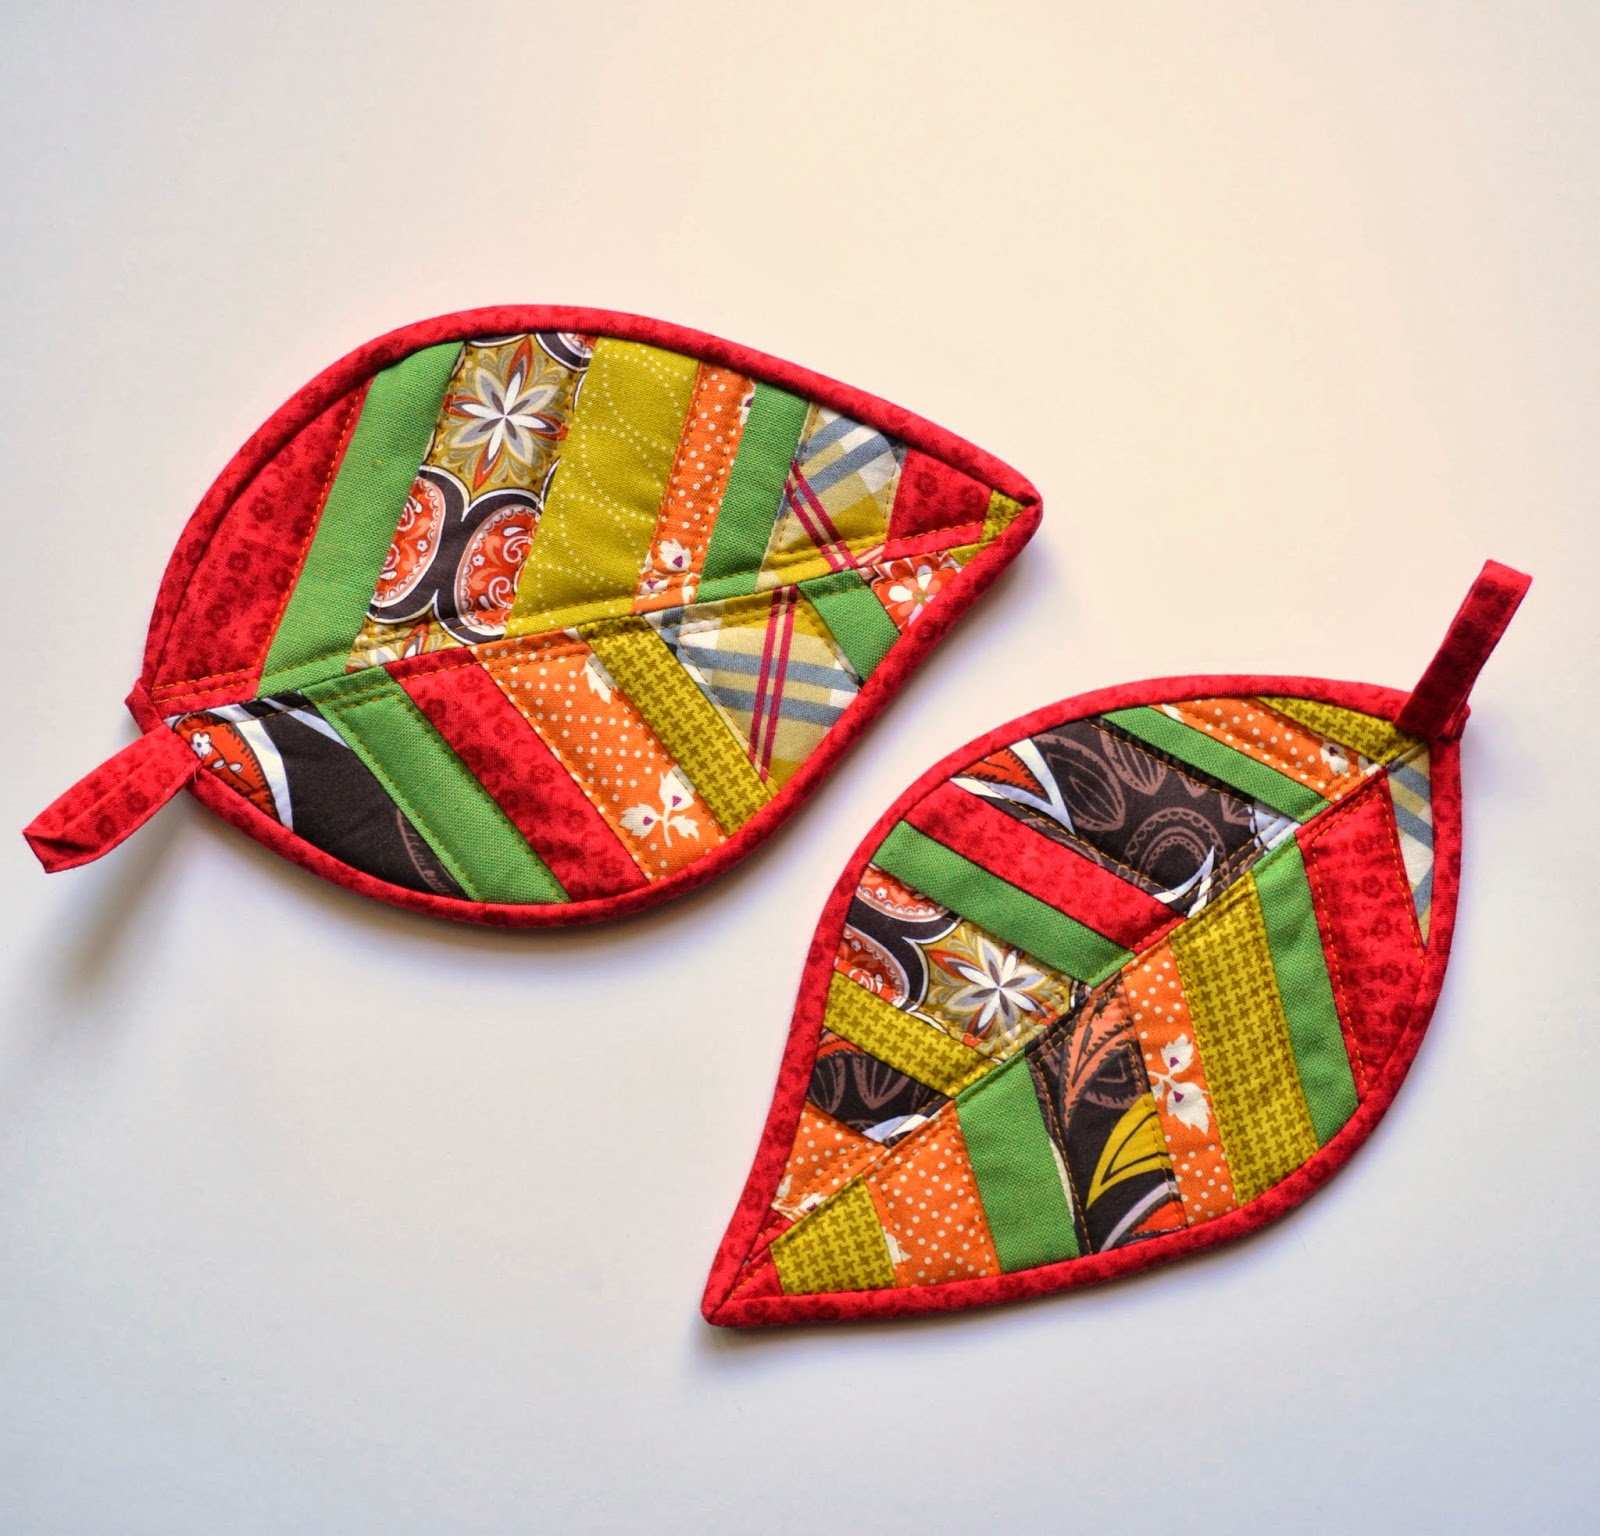 Half Stitched: Quilted Leaf Potholder ~ A Tutorial : quilted pot holders - Adamdwight.com